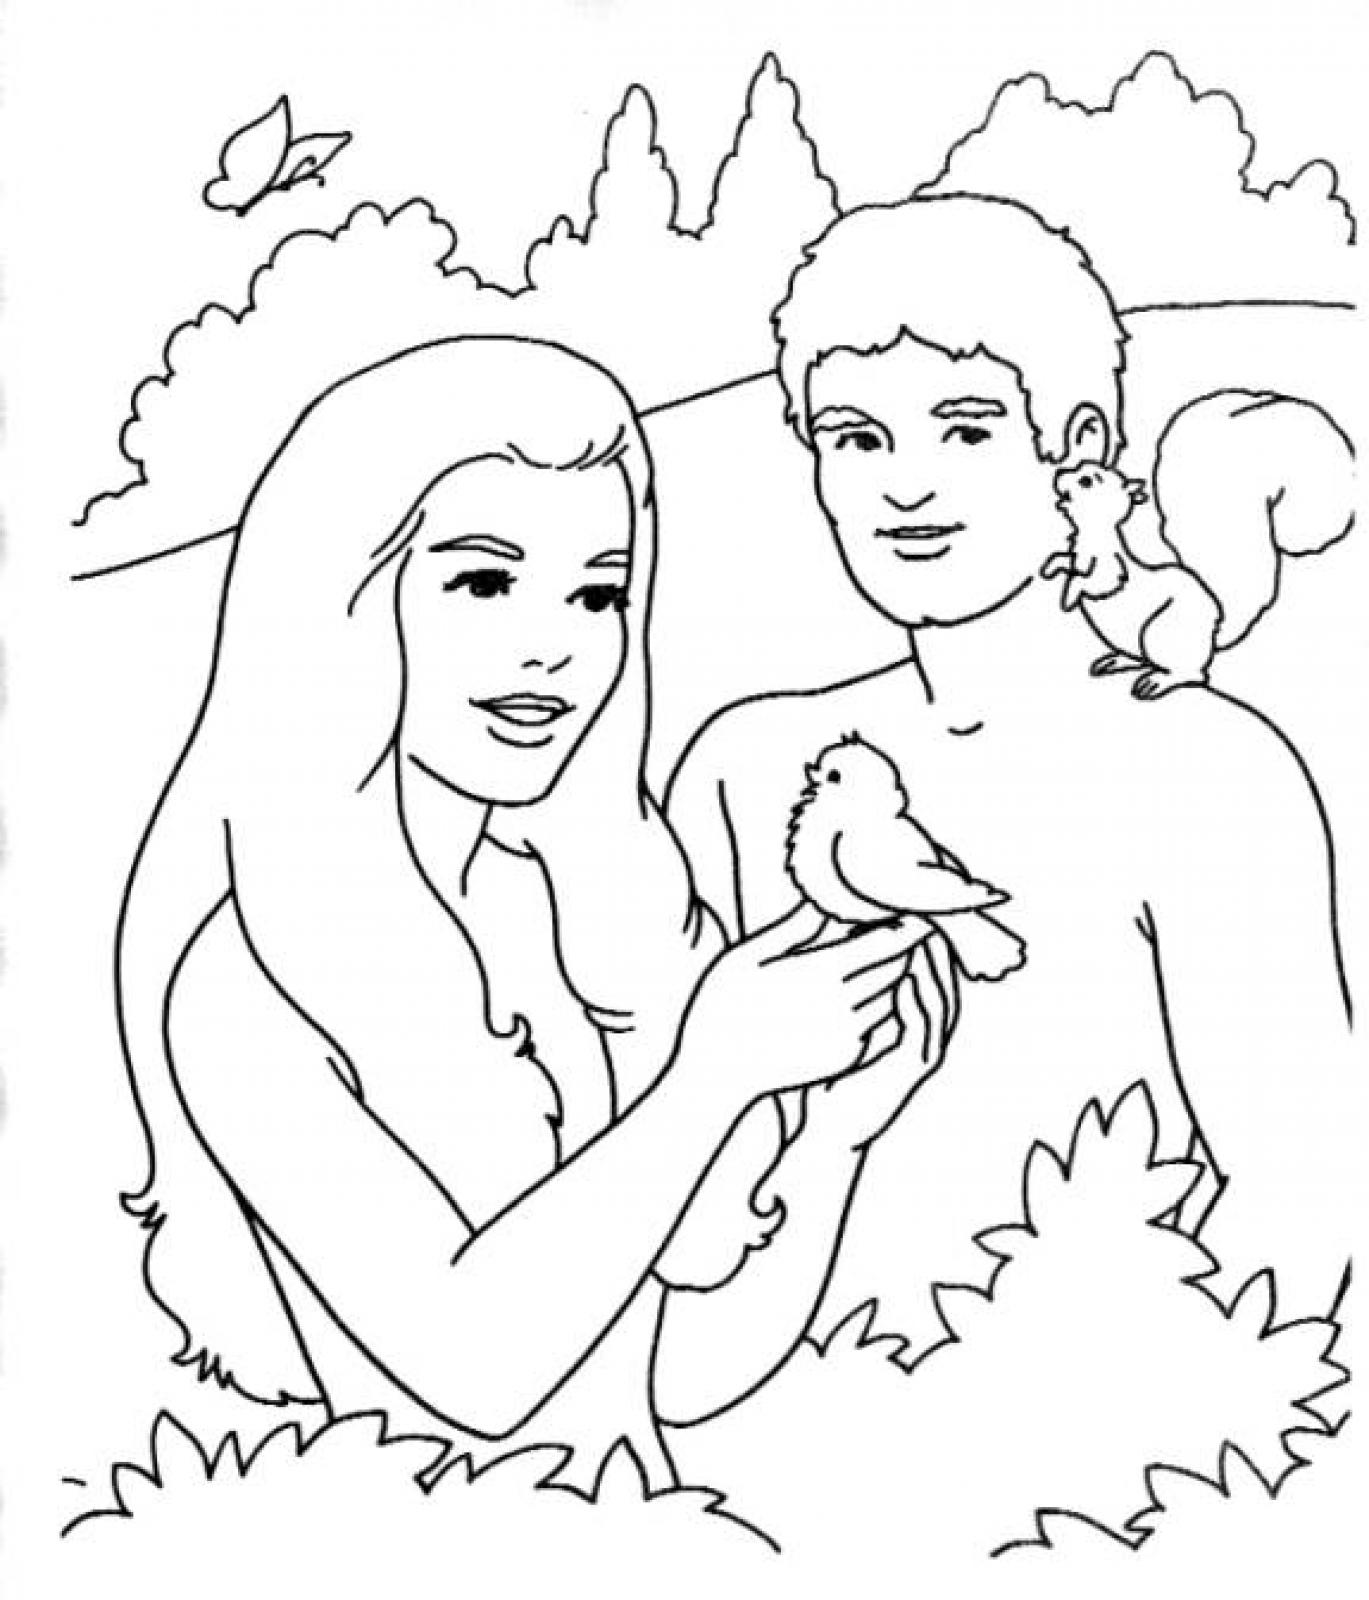 coloring page adam and eve printable adam and eve coloring pages for kids cool2bkids adam coloring and eve page